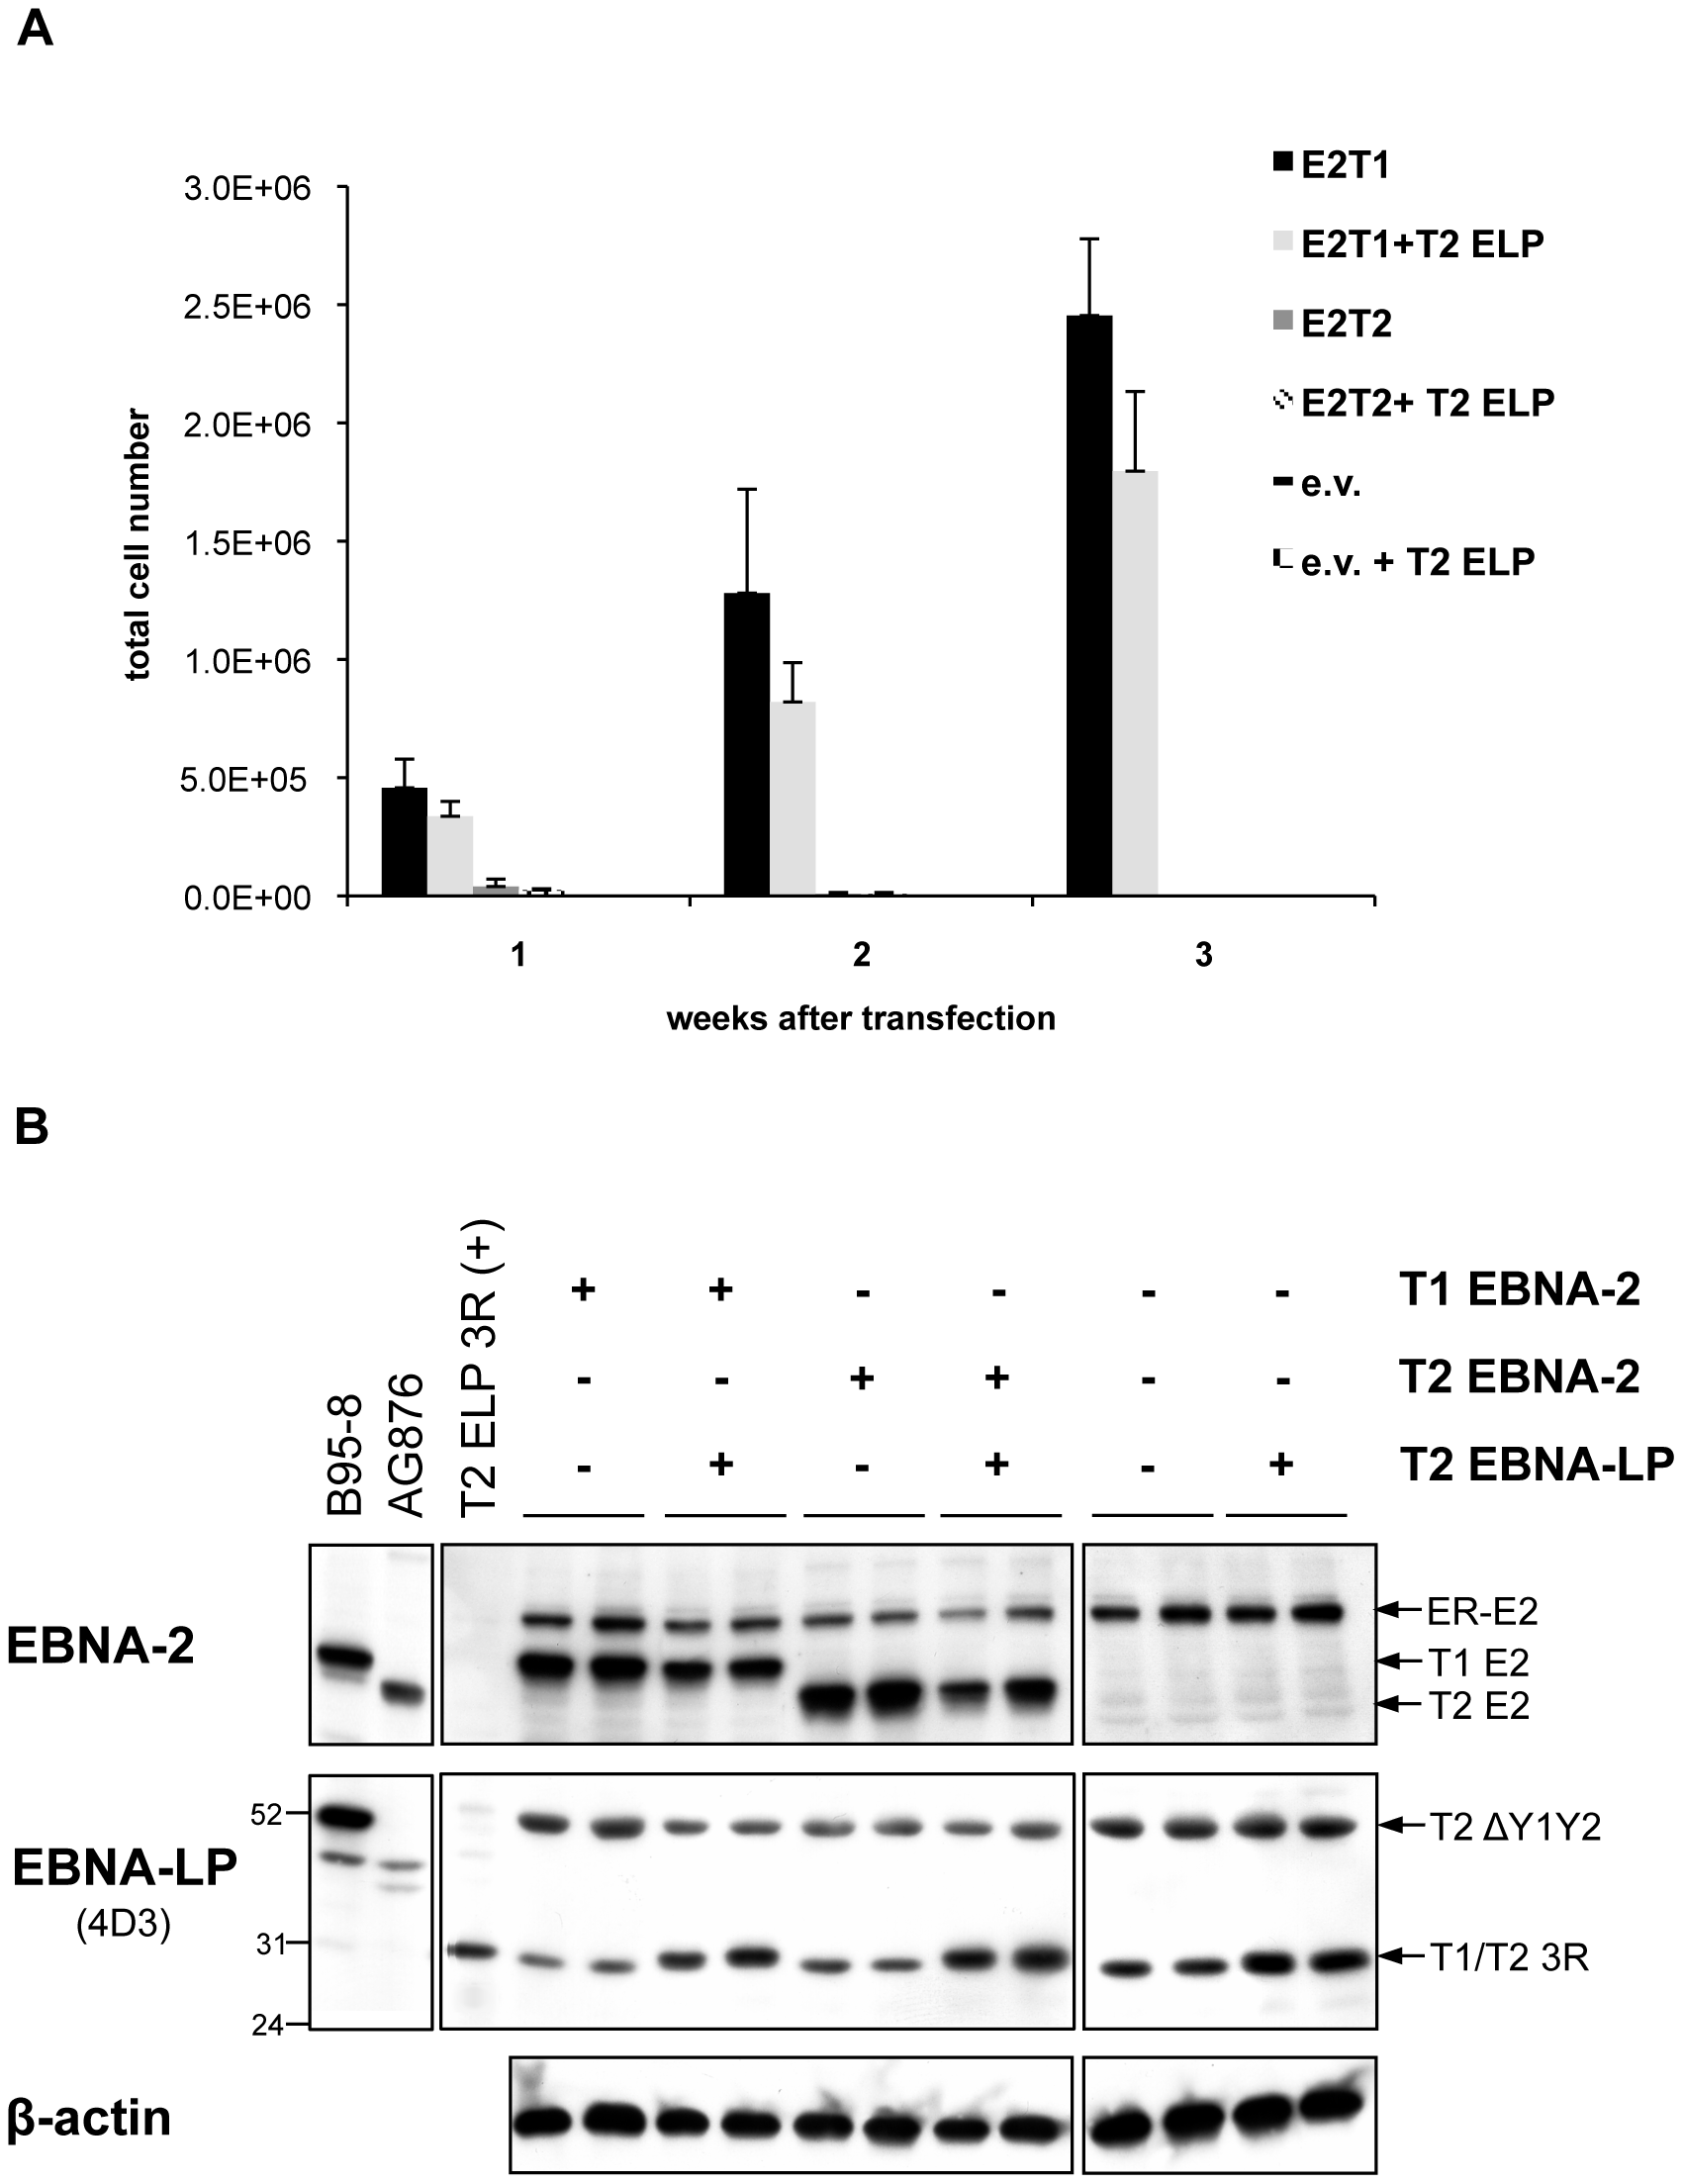 Cooperation between type 1 and type 2 EBNA-2 and EBNA-LP in the EREB2.5 growth system: The assay functionally distinguishes between the ability of type 1 and type 2 EBNA-2 to sustain cell proliferation, regardless the type of EBNA-LP.